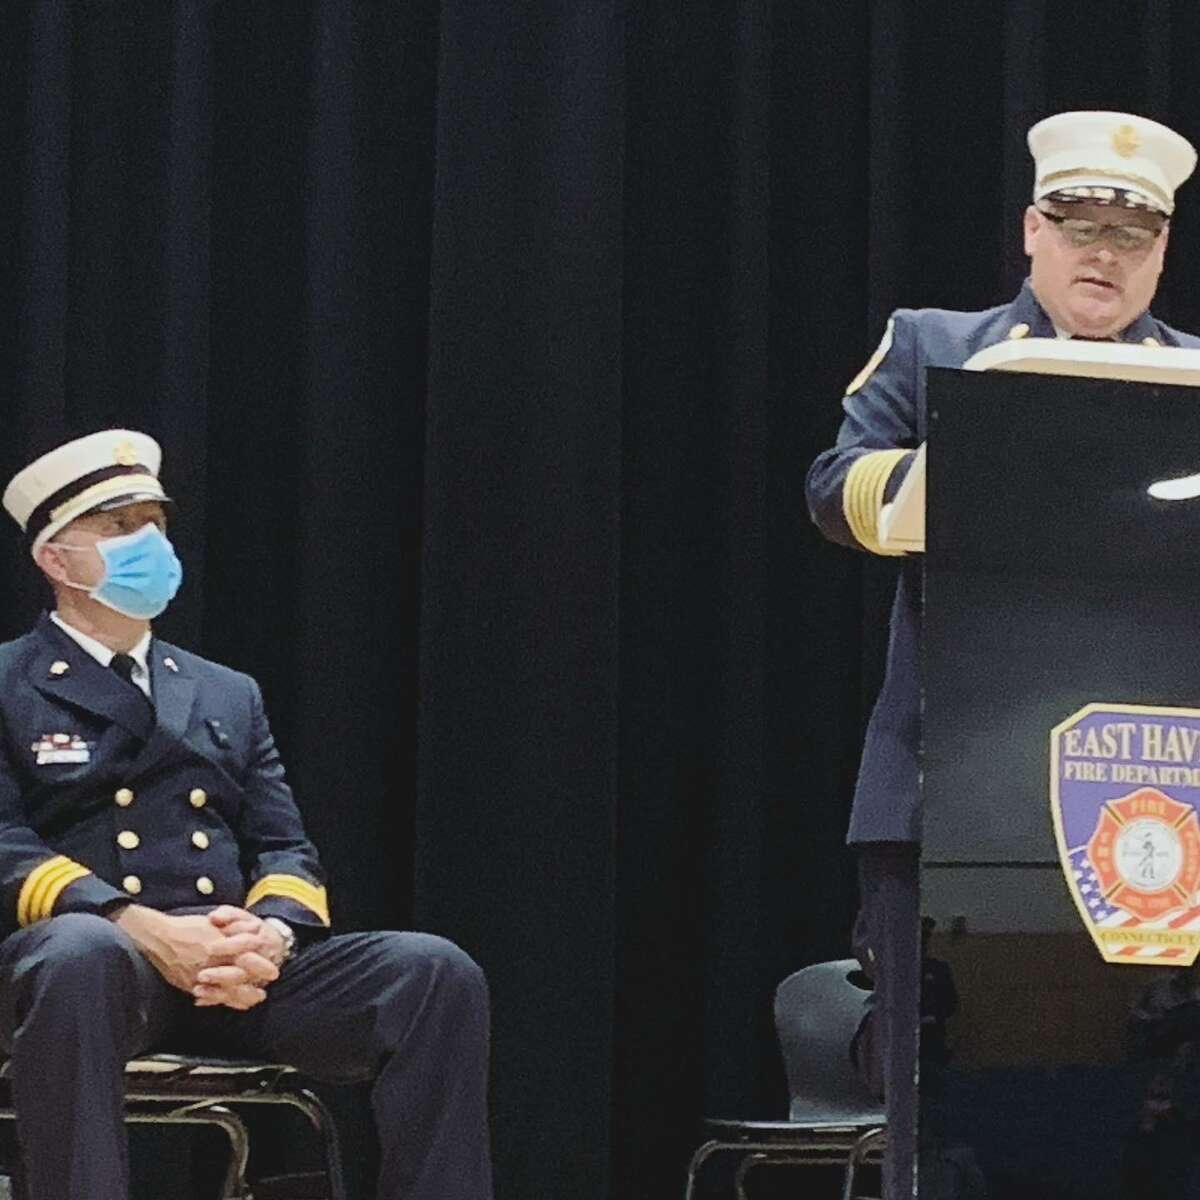 Firefighter Christopher Rosa, left, was sworn in on Friday, Oct. 23, as a new East Haven Fire Department battalion chief, replacing recently retired Battalion Chief James Oca. Fire Chief Matt Marcarelli, right, was among the speakers. Six probationary firefighters also were sworn in.